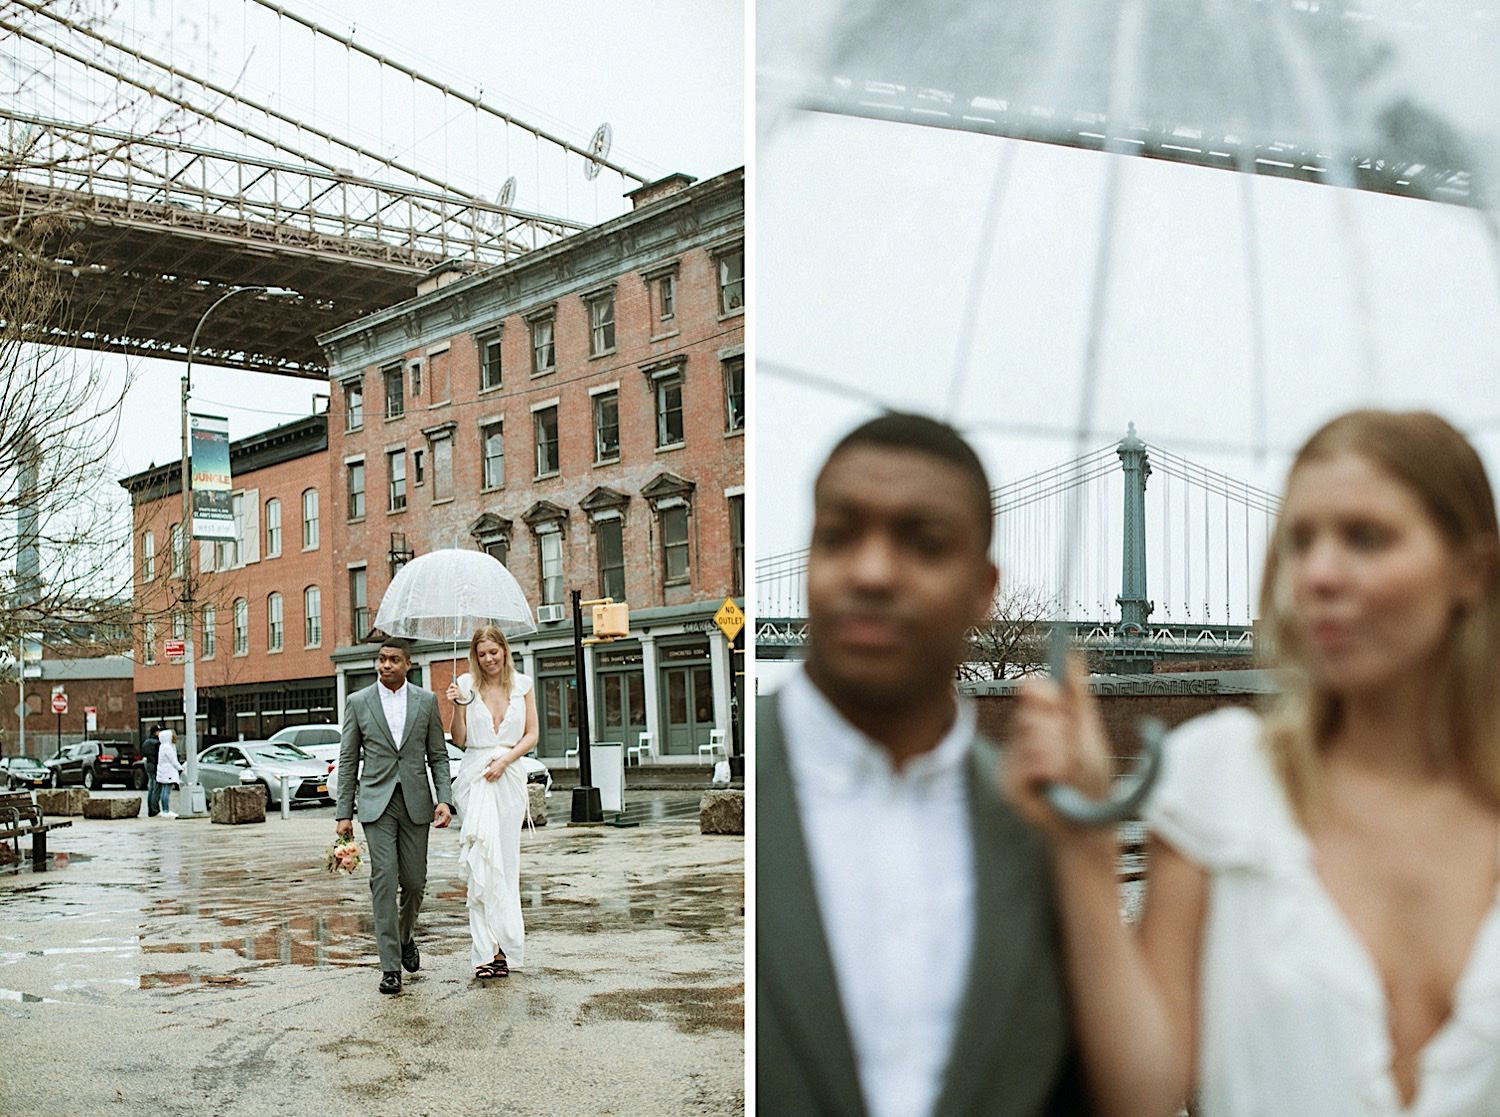 DUMBO Wedding Photography - Bride and groom arm in arm walking towards the pier in DUMBO Brooklyn